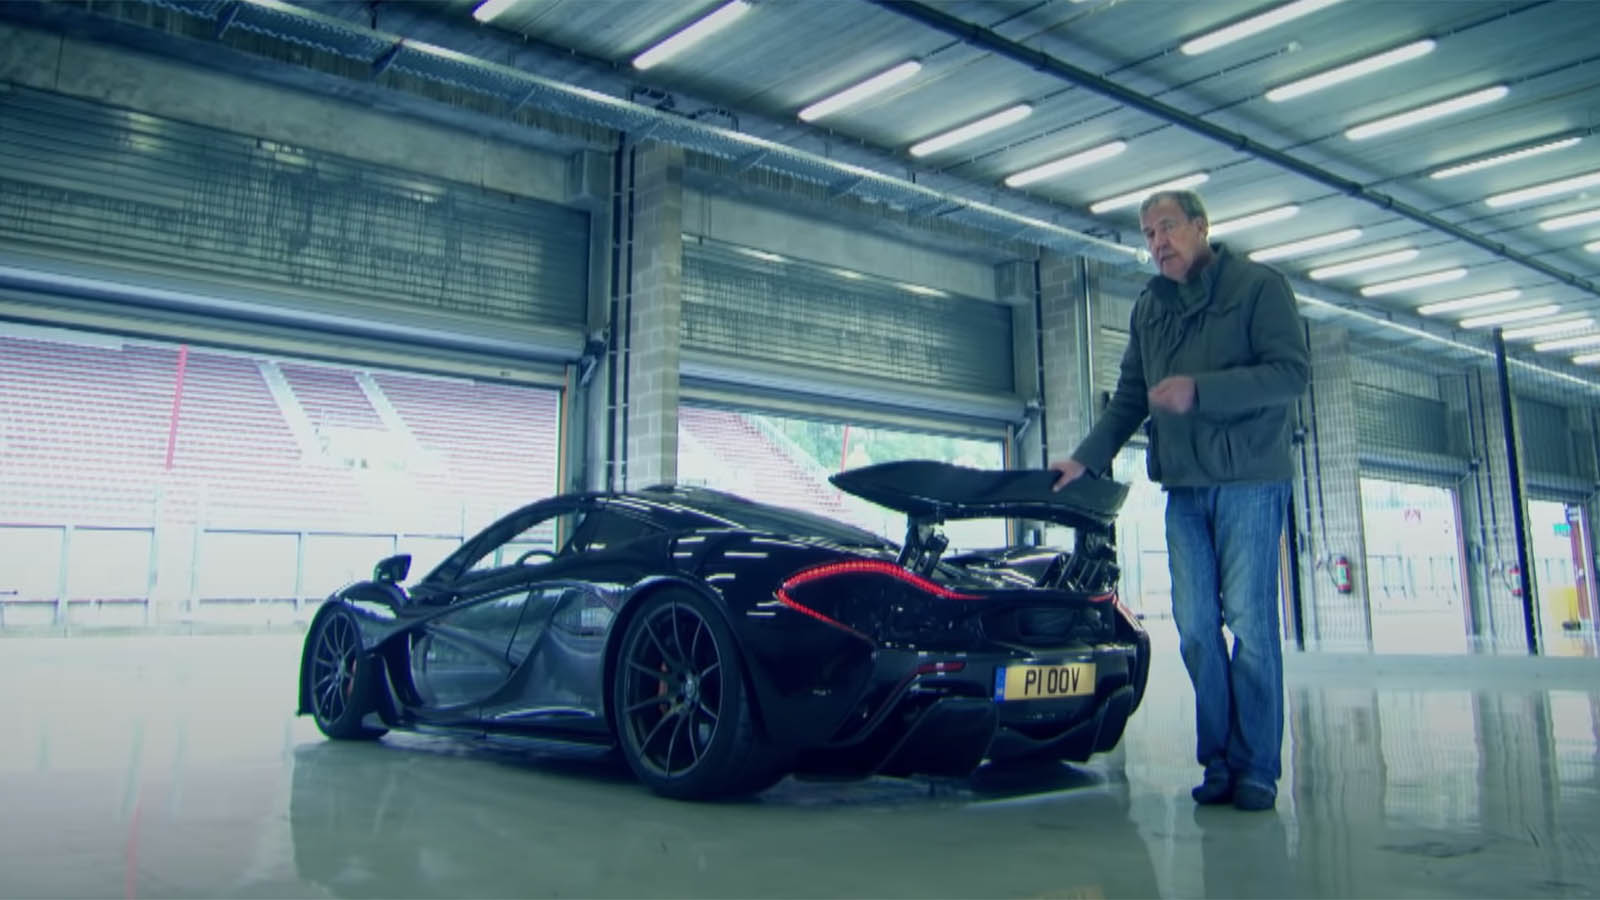 Jeremy Clarkson with McLaren P1